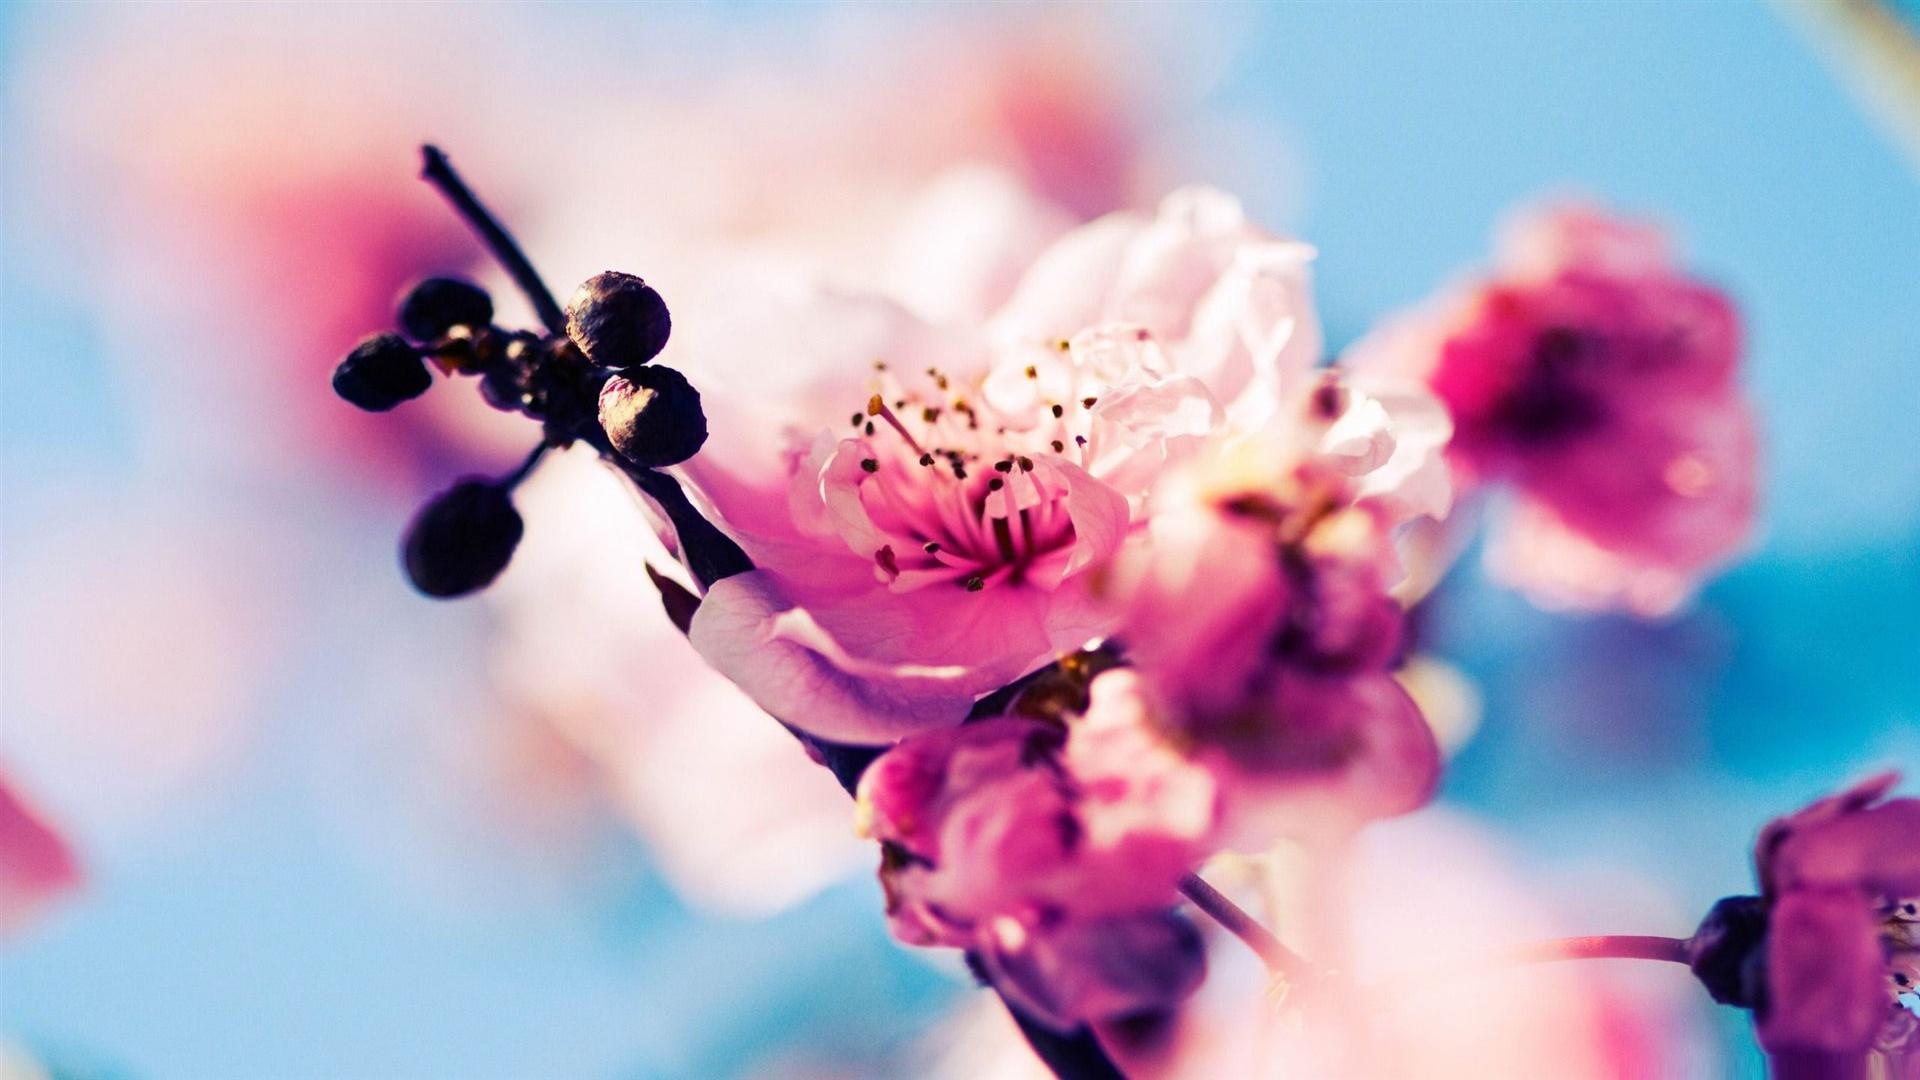 Cherry Blossom Festival In An